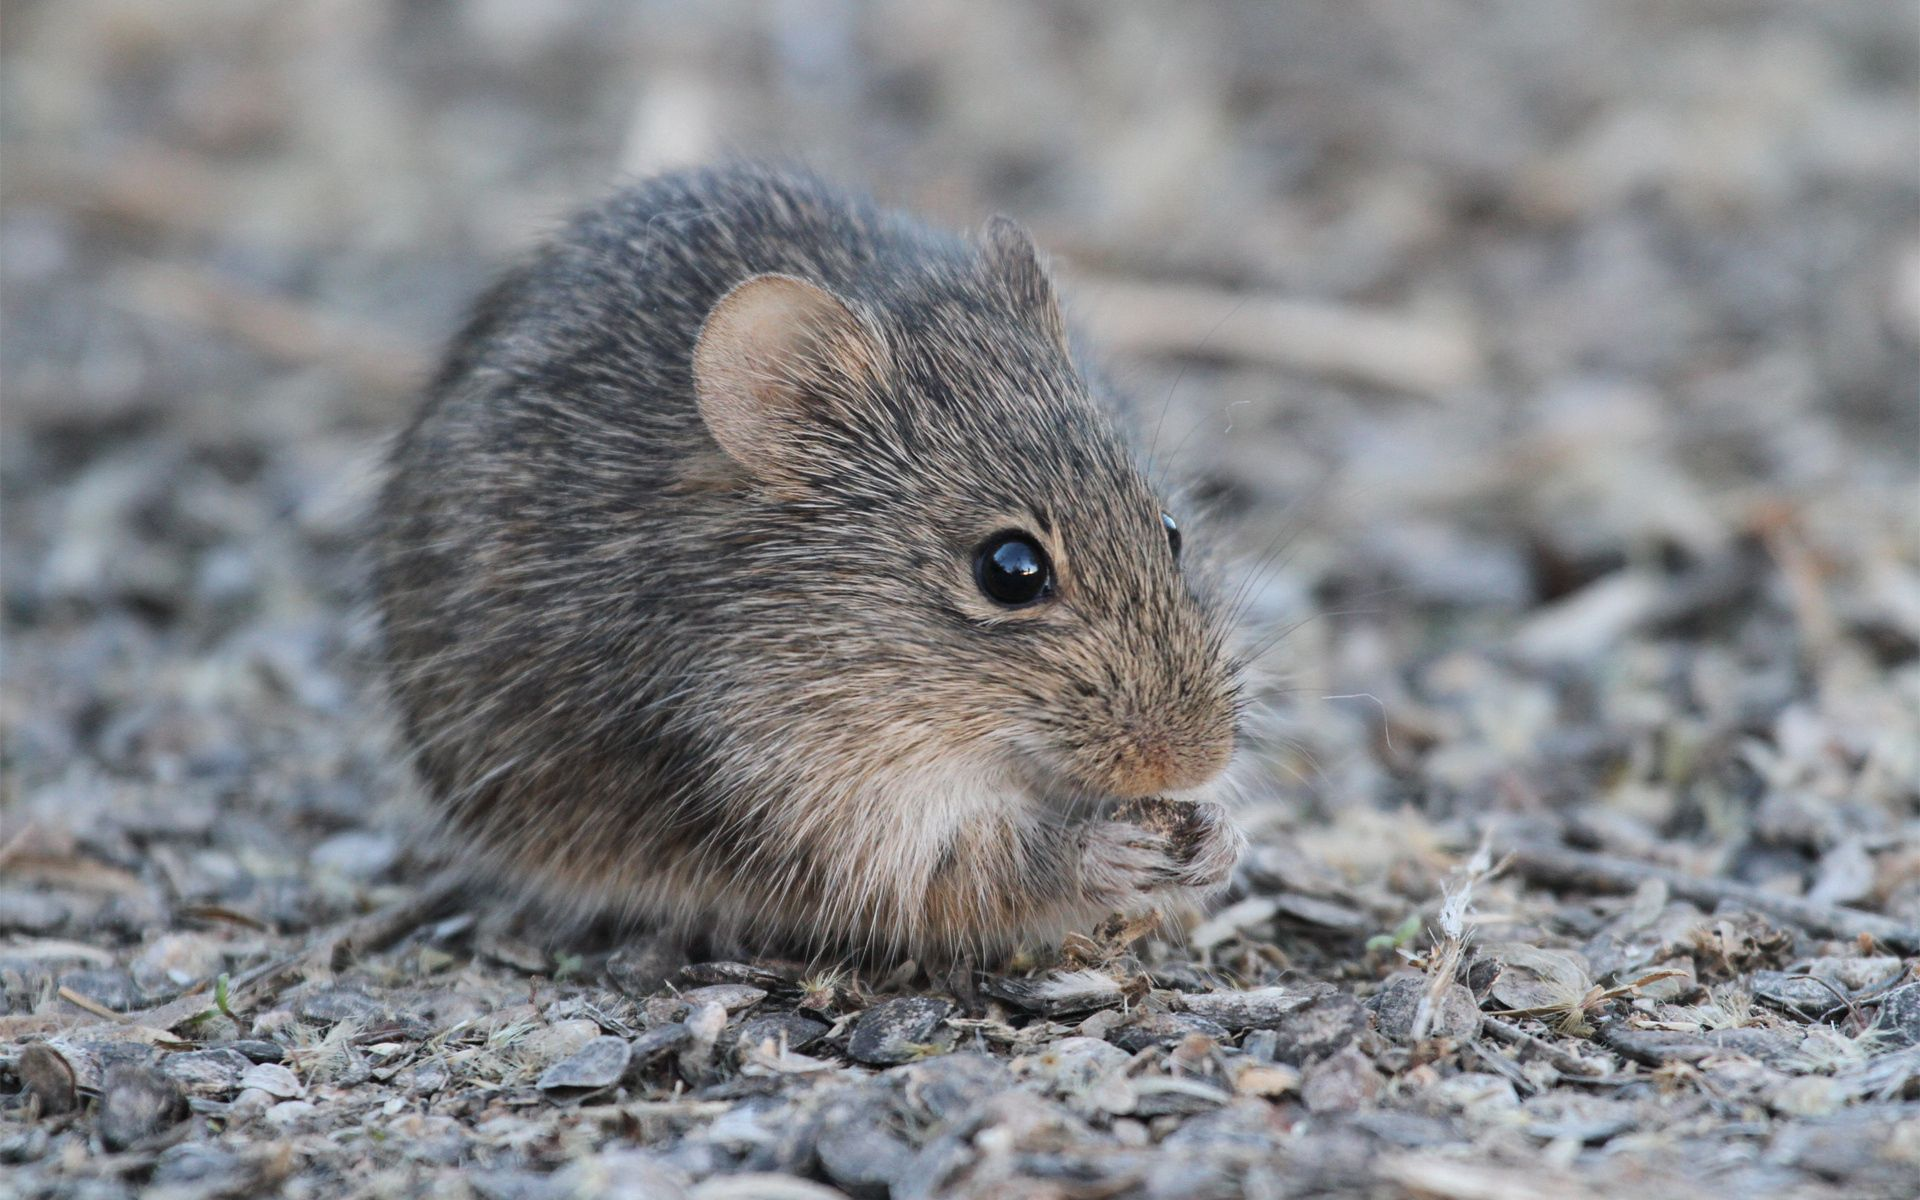 52401 download wallpaper Animals, Mouse, Rodent, Gnaws, Eats, Bear screensavers and pictures for free